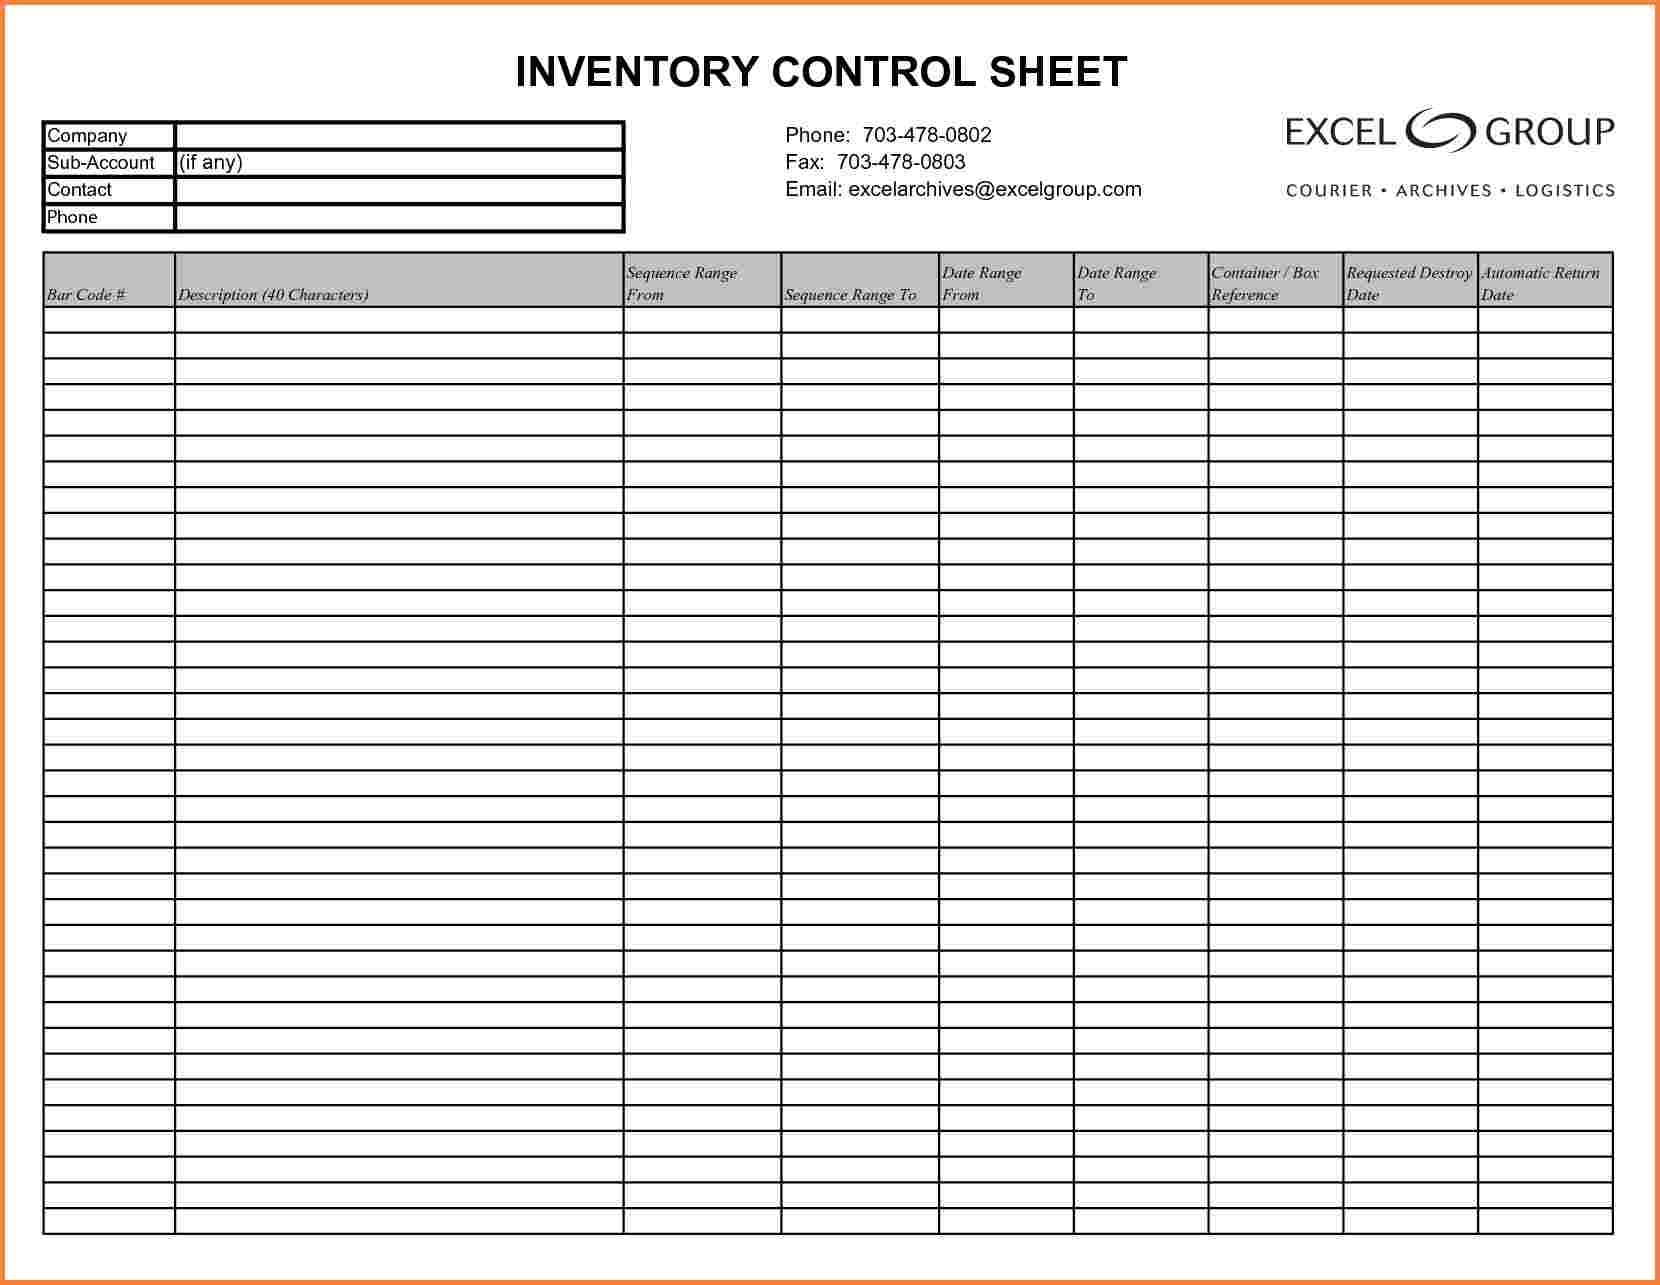 Sample Inventory Sheets Save.btsa.co For Basic Inventory Spreadsheet With Basic Inventory Sheet Template